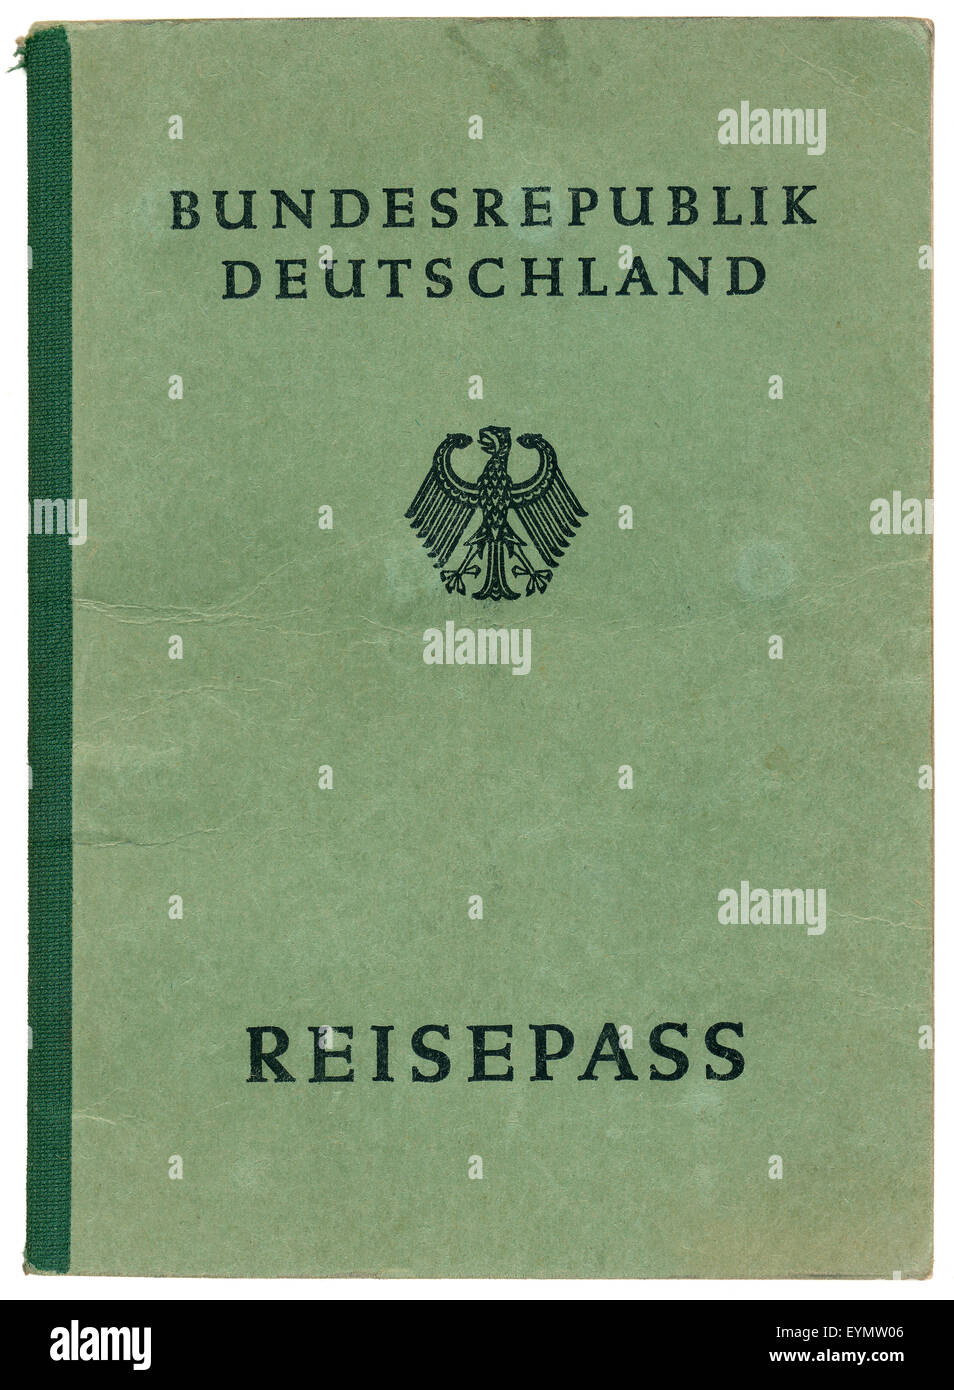 Old German passport, c. 1956, Germany, Europe Stock Photo